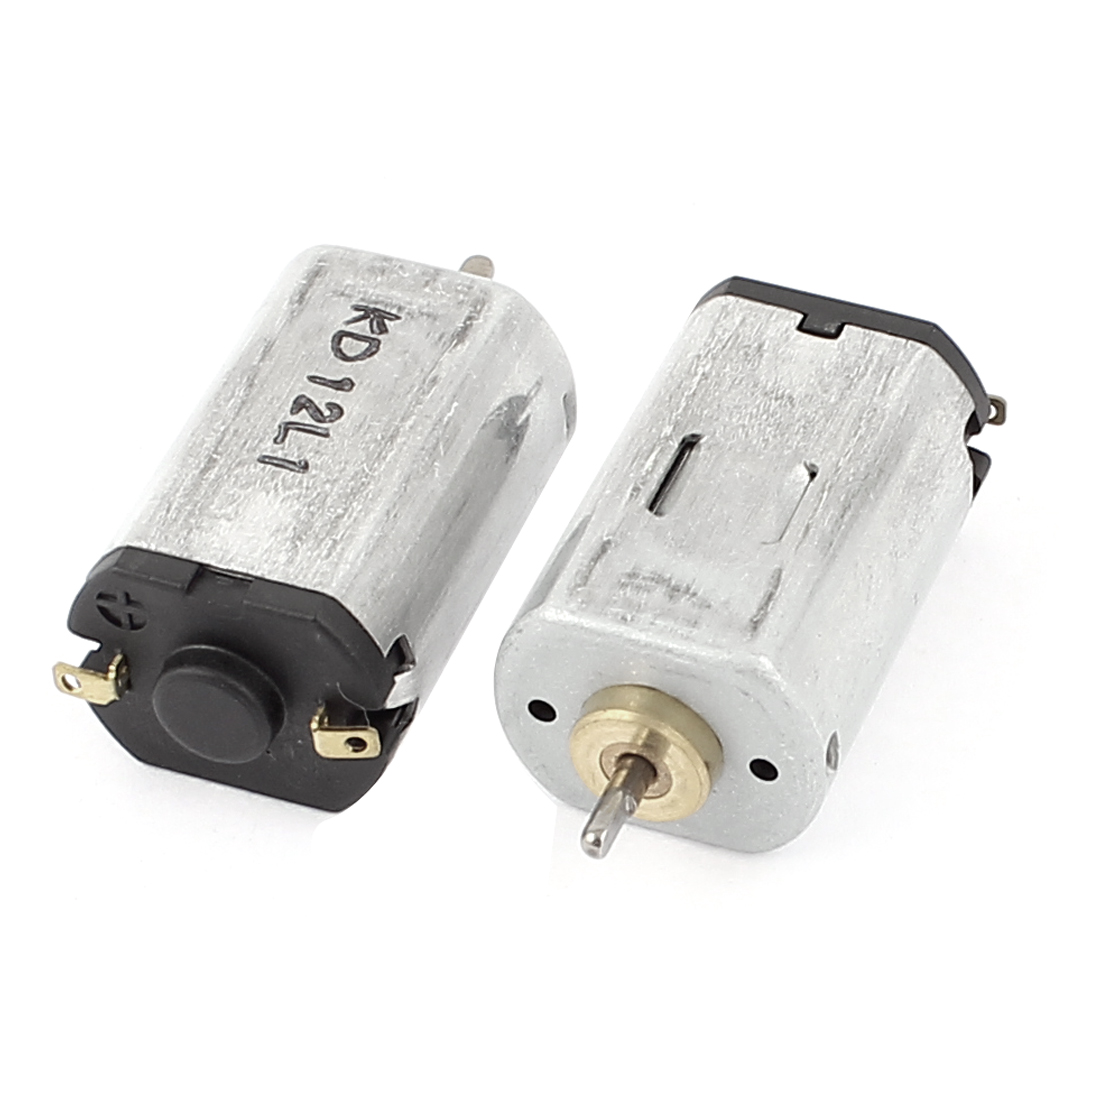 DC 4.5-6V 17500-22500 RPM Rotary Speed High Torque Micro Motor 2Pcs for RC Toys